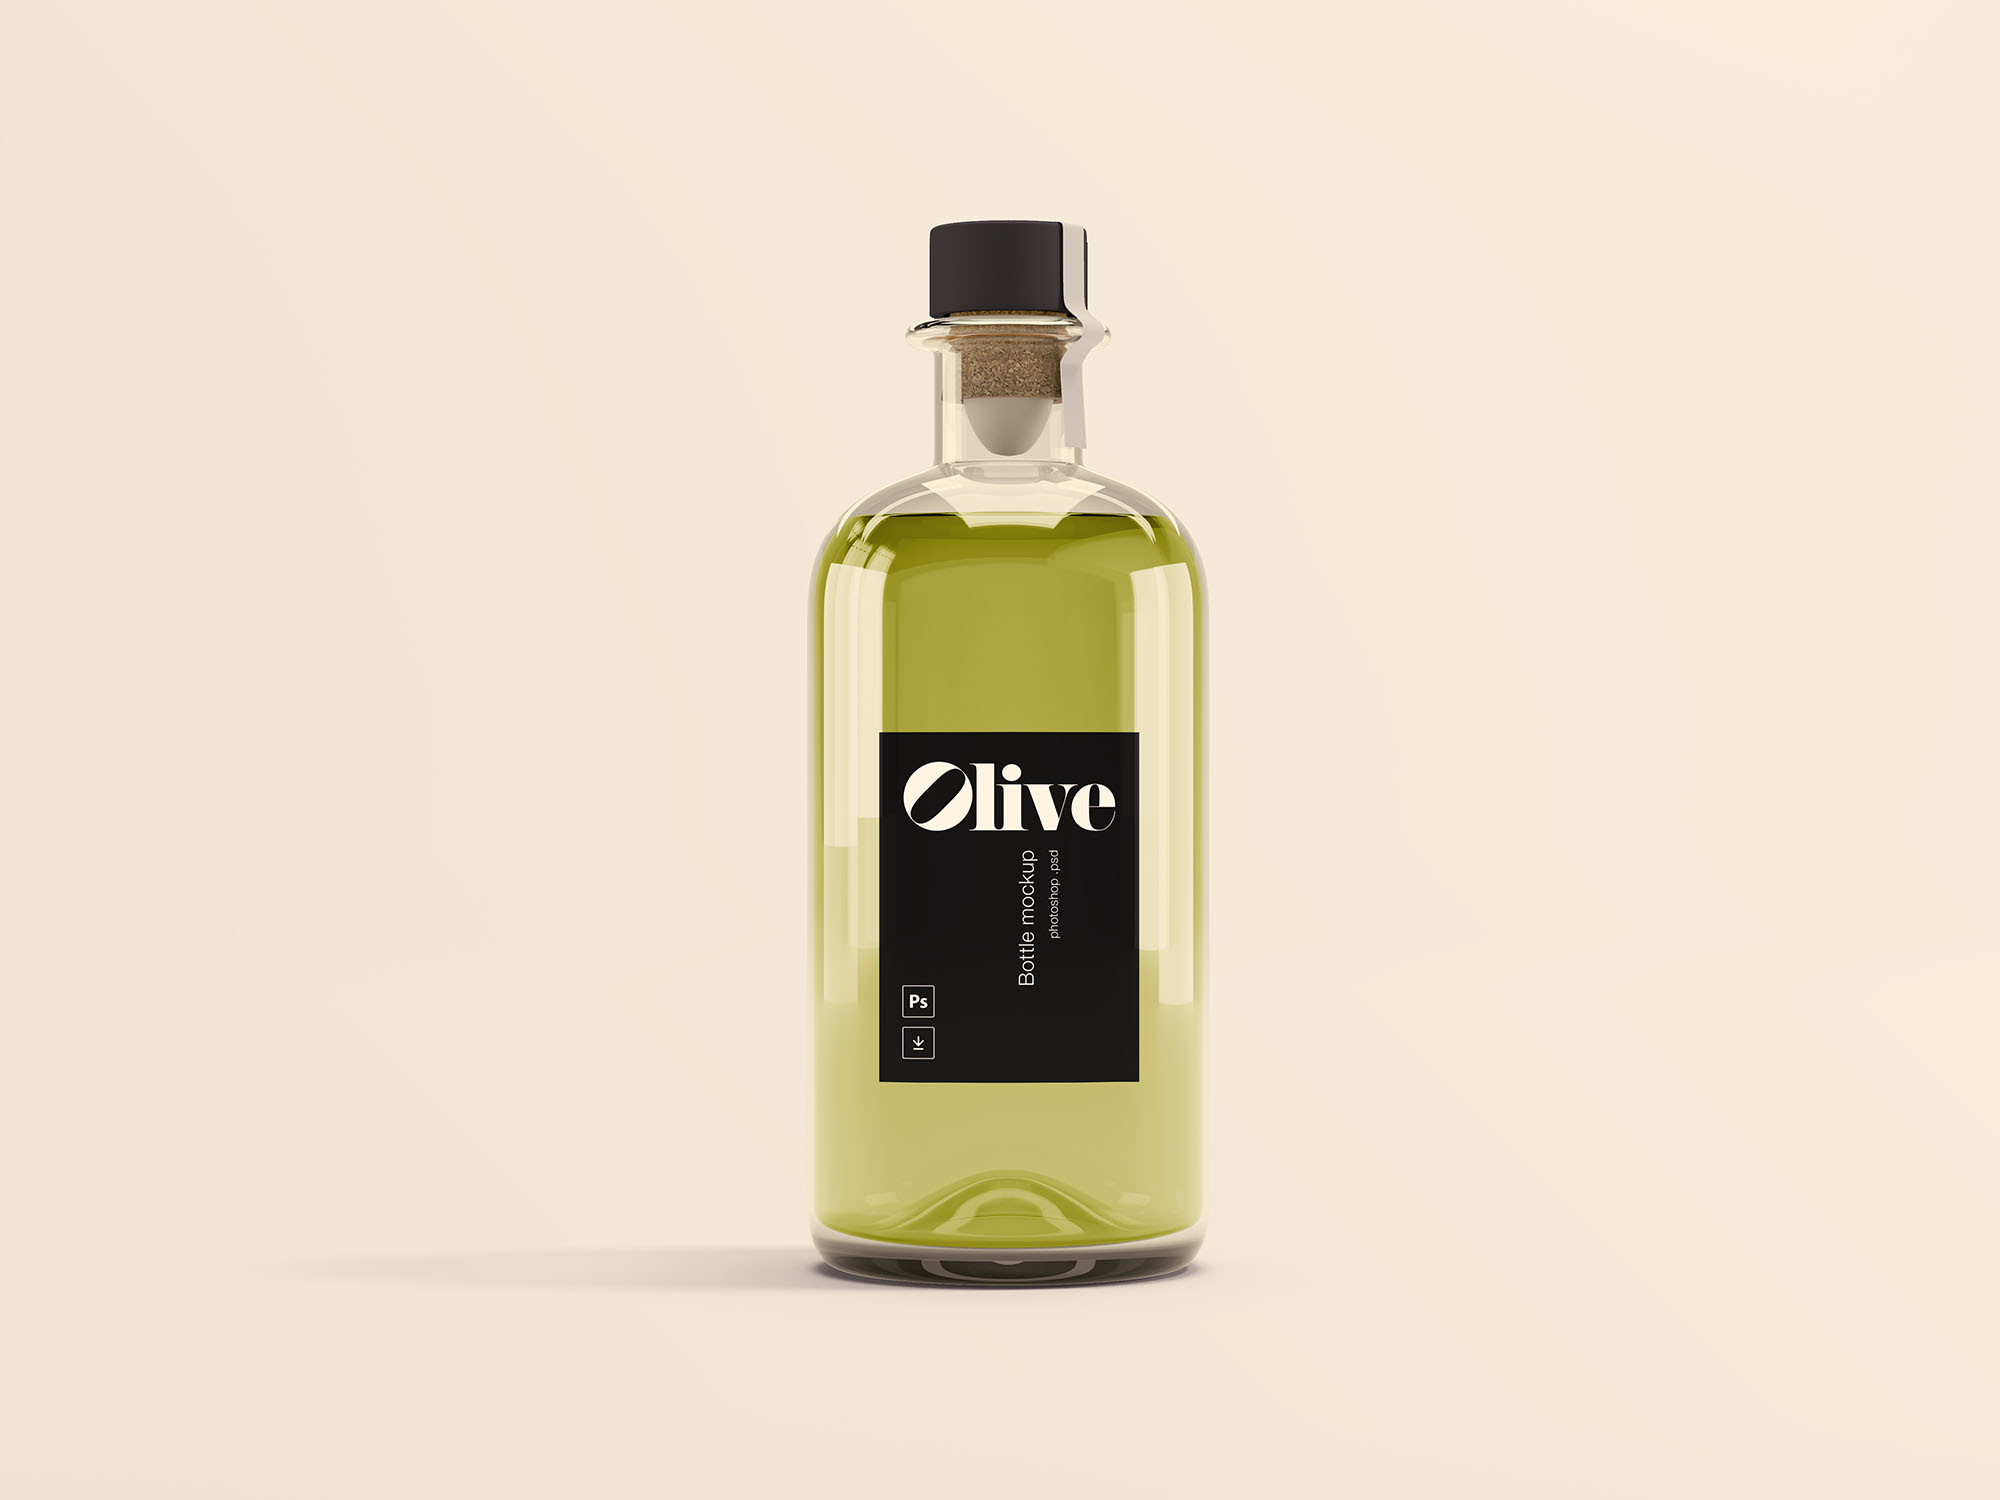 olive oil bottle mockup